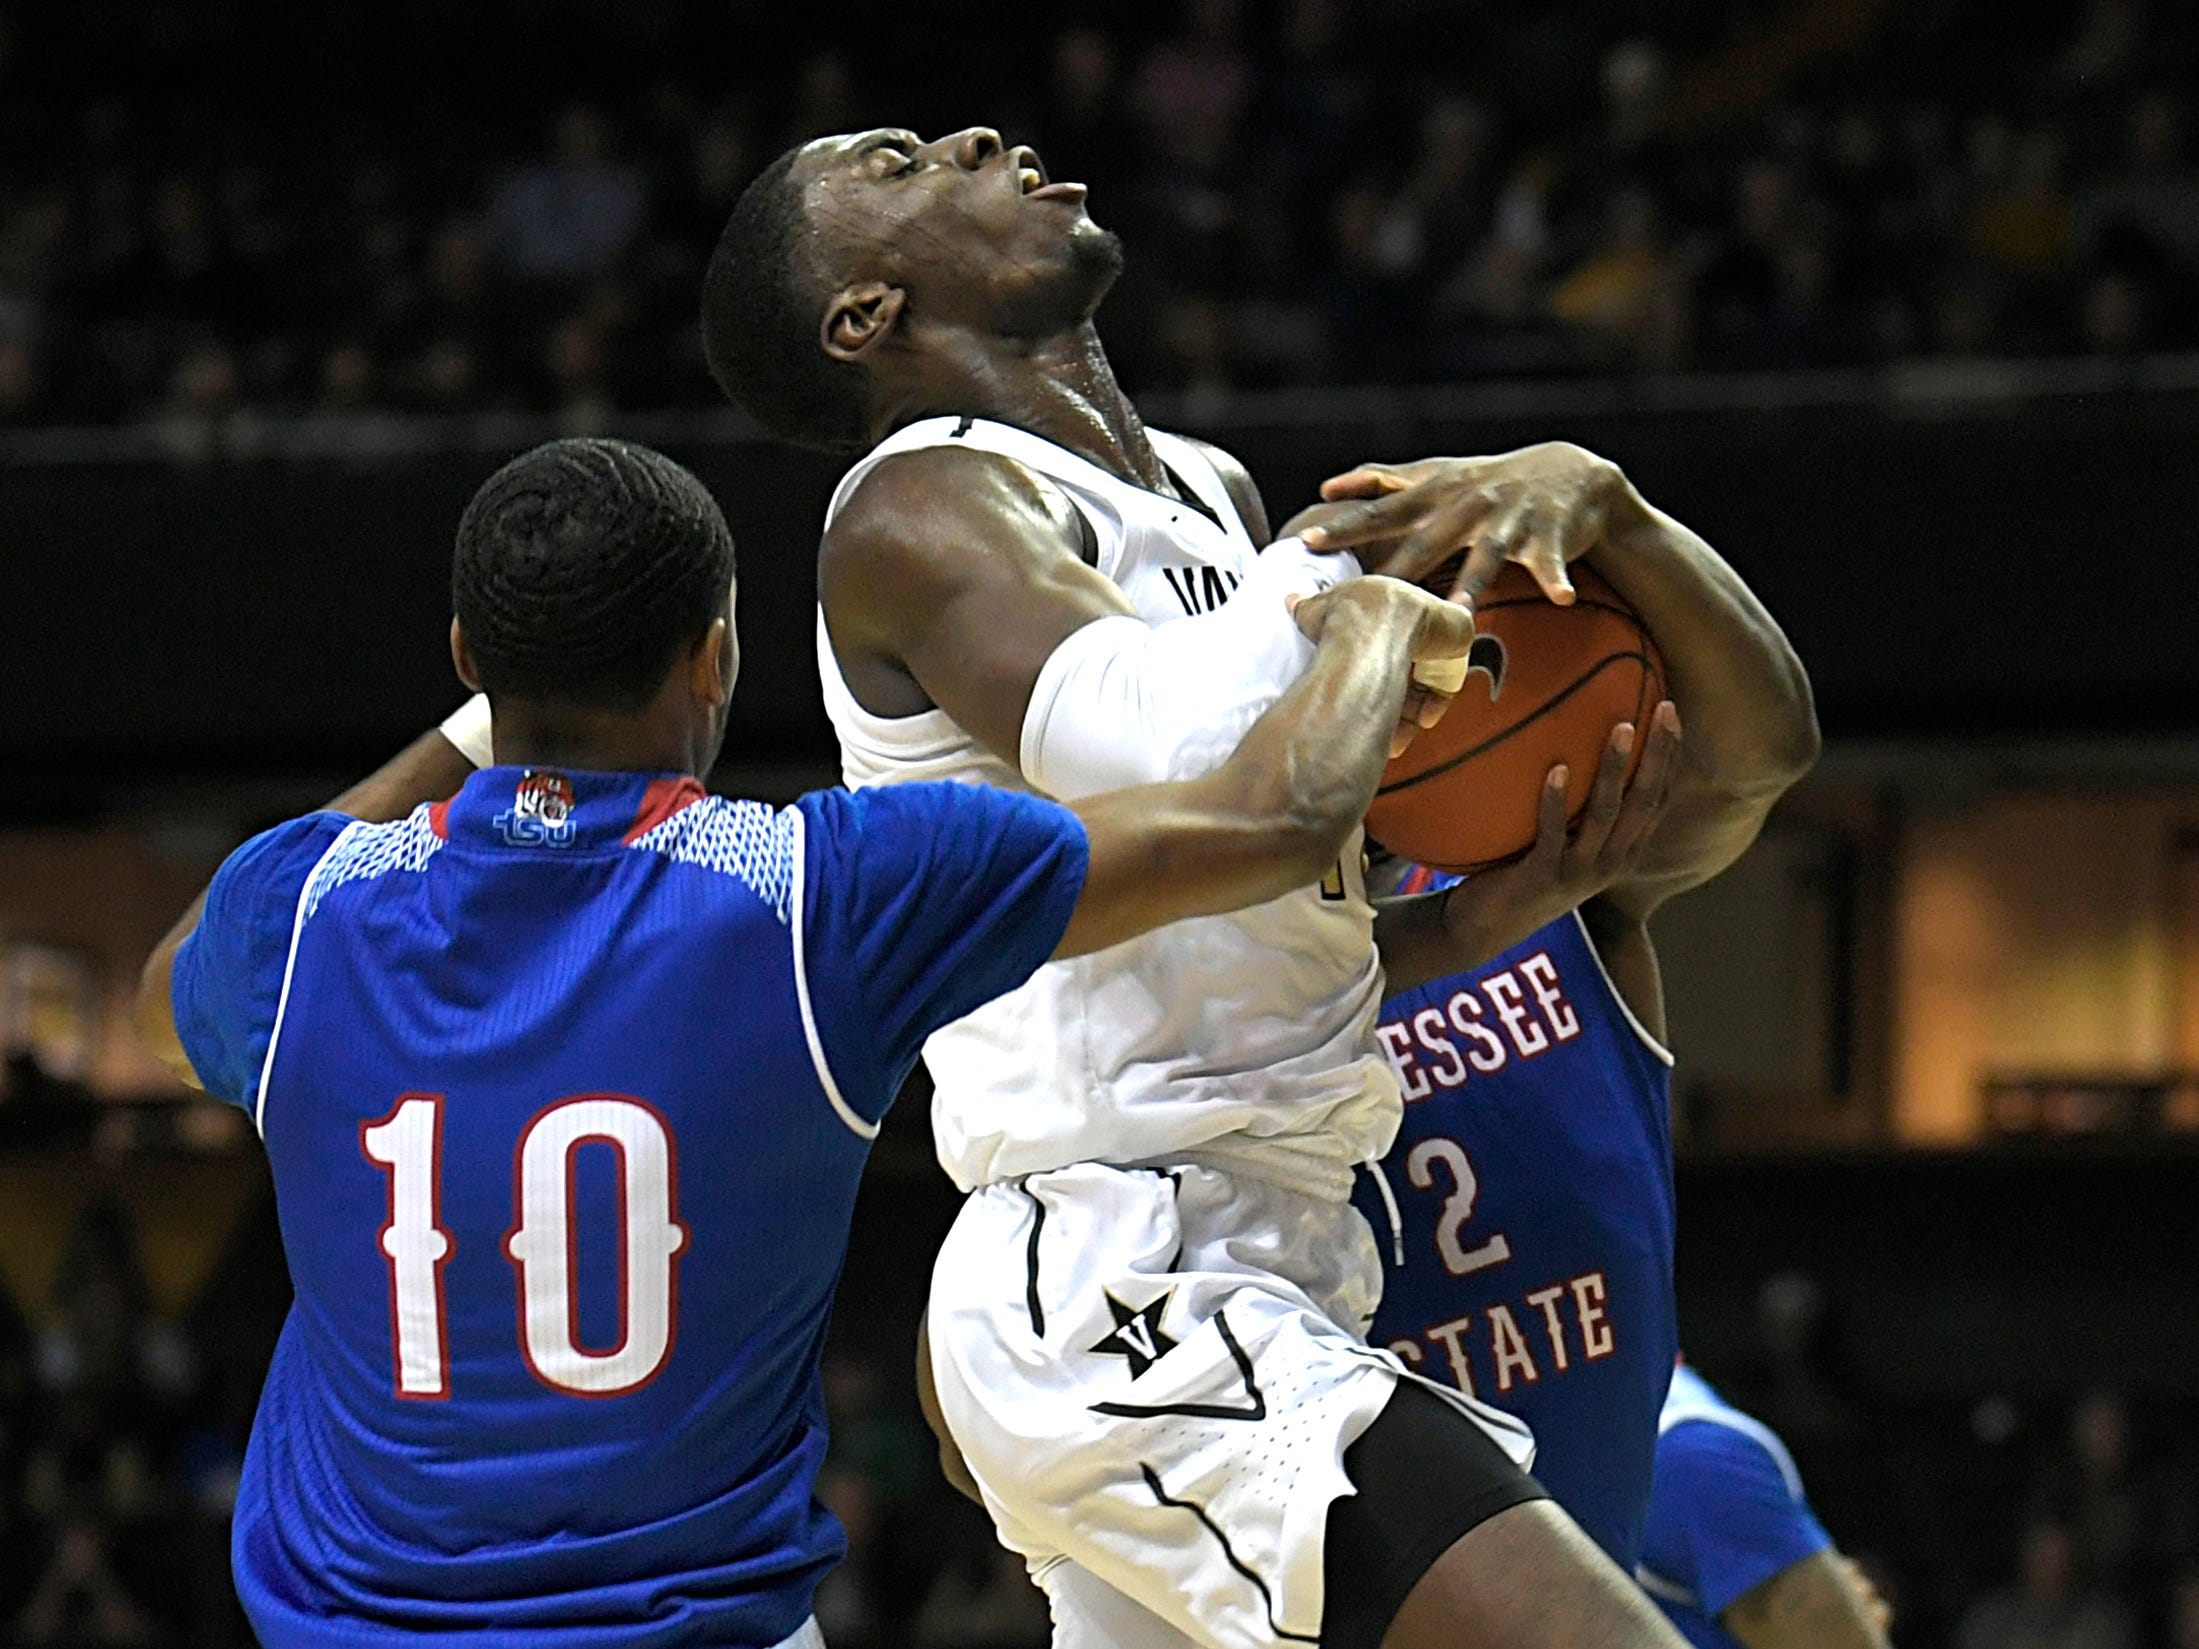 Vanderbilt forward Simisola Shittu (11) drives to the basket against TSU players during a game at Memorial Gym in Nashville on Saturday, Dec. 29, 2018.